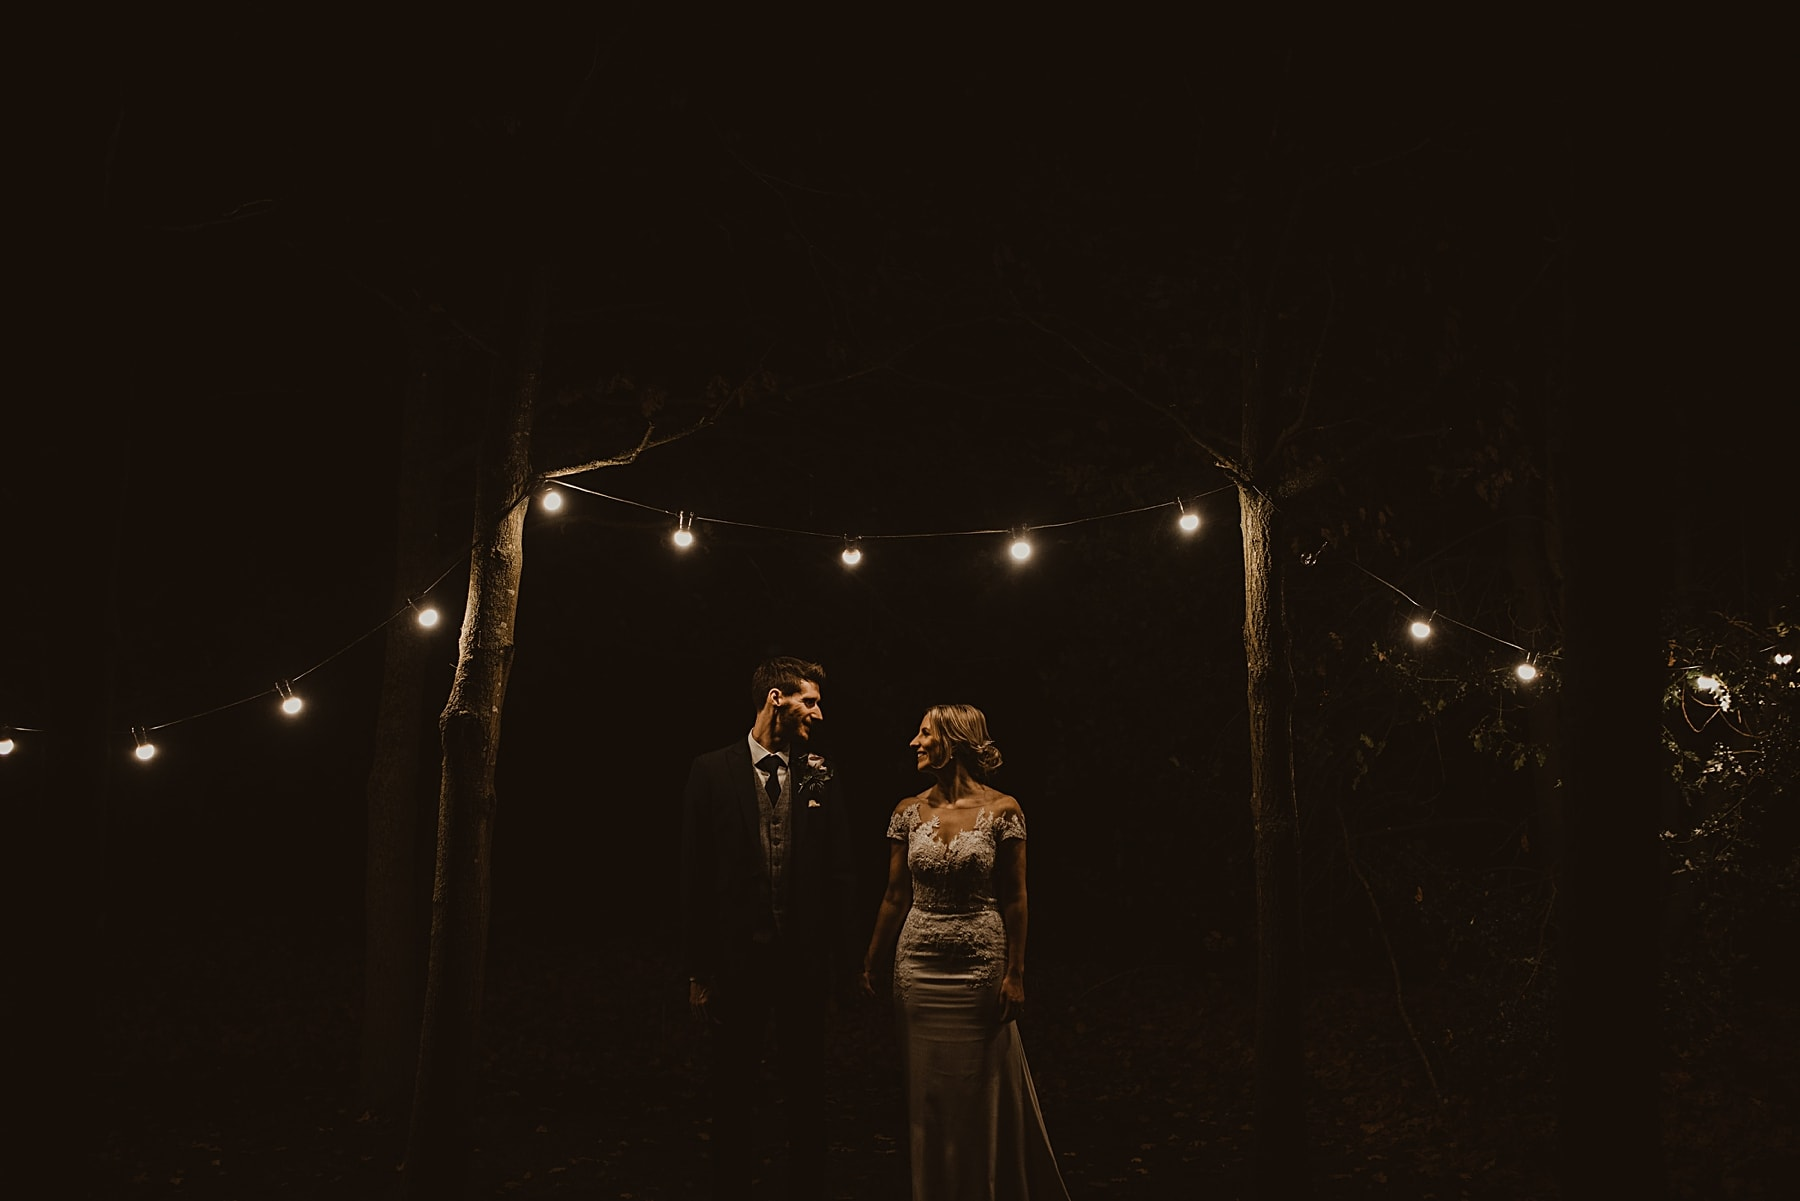 Couple standing under festoon lights